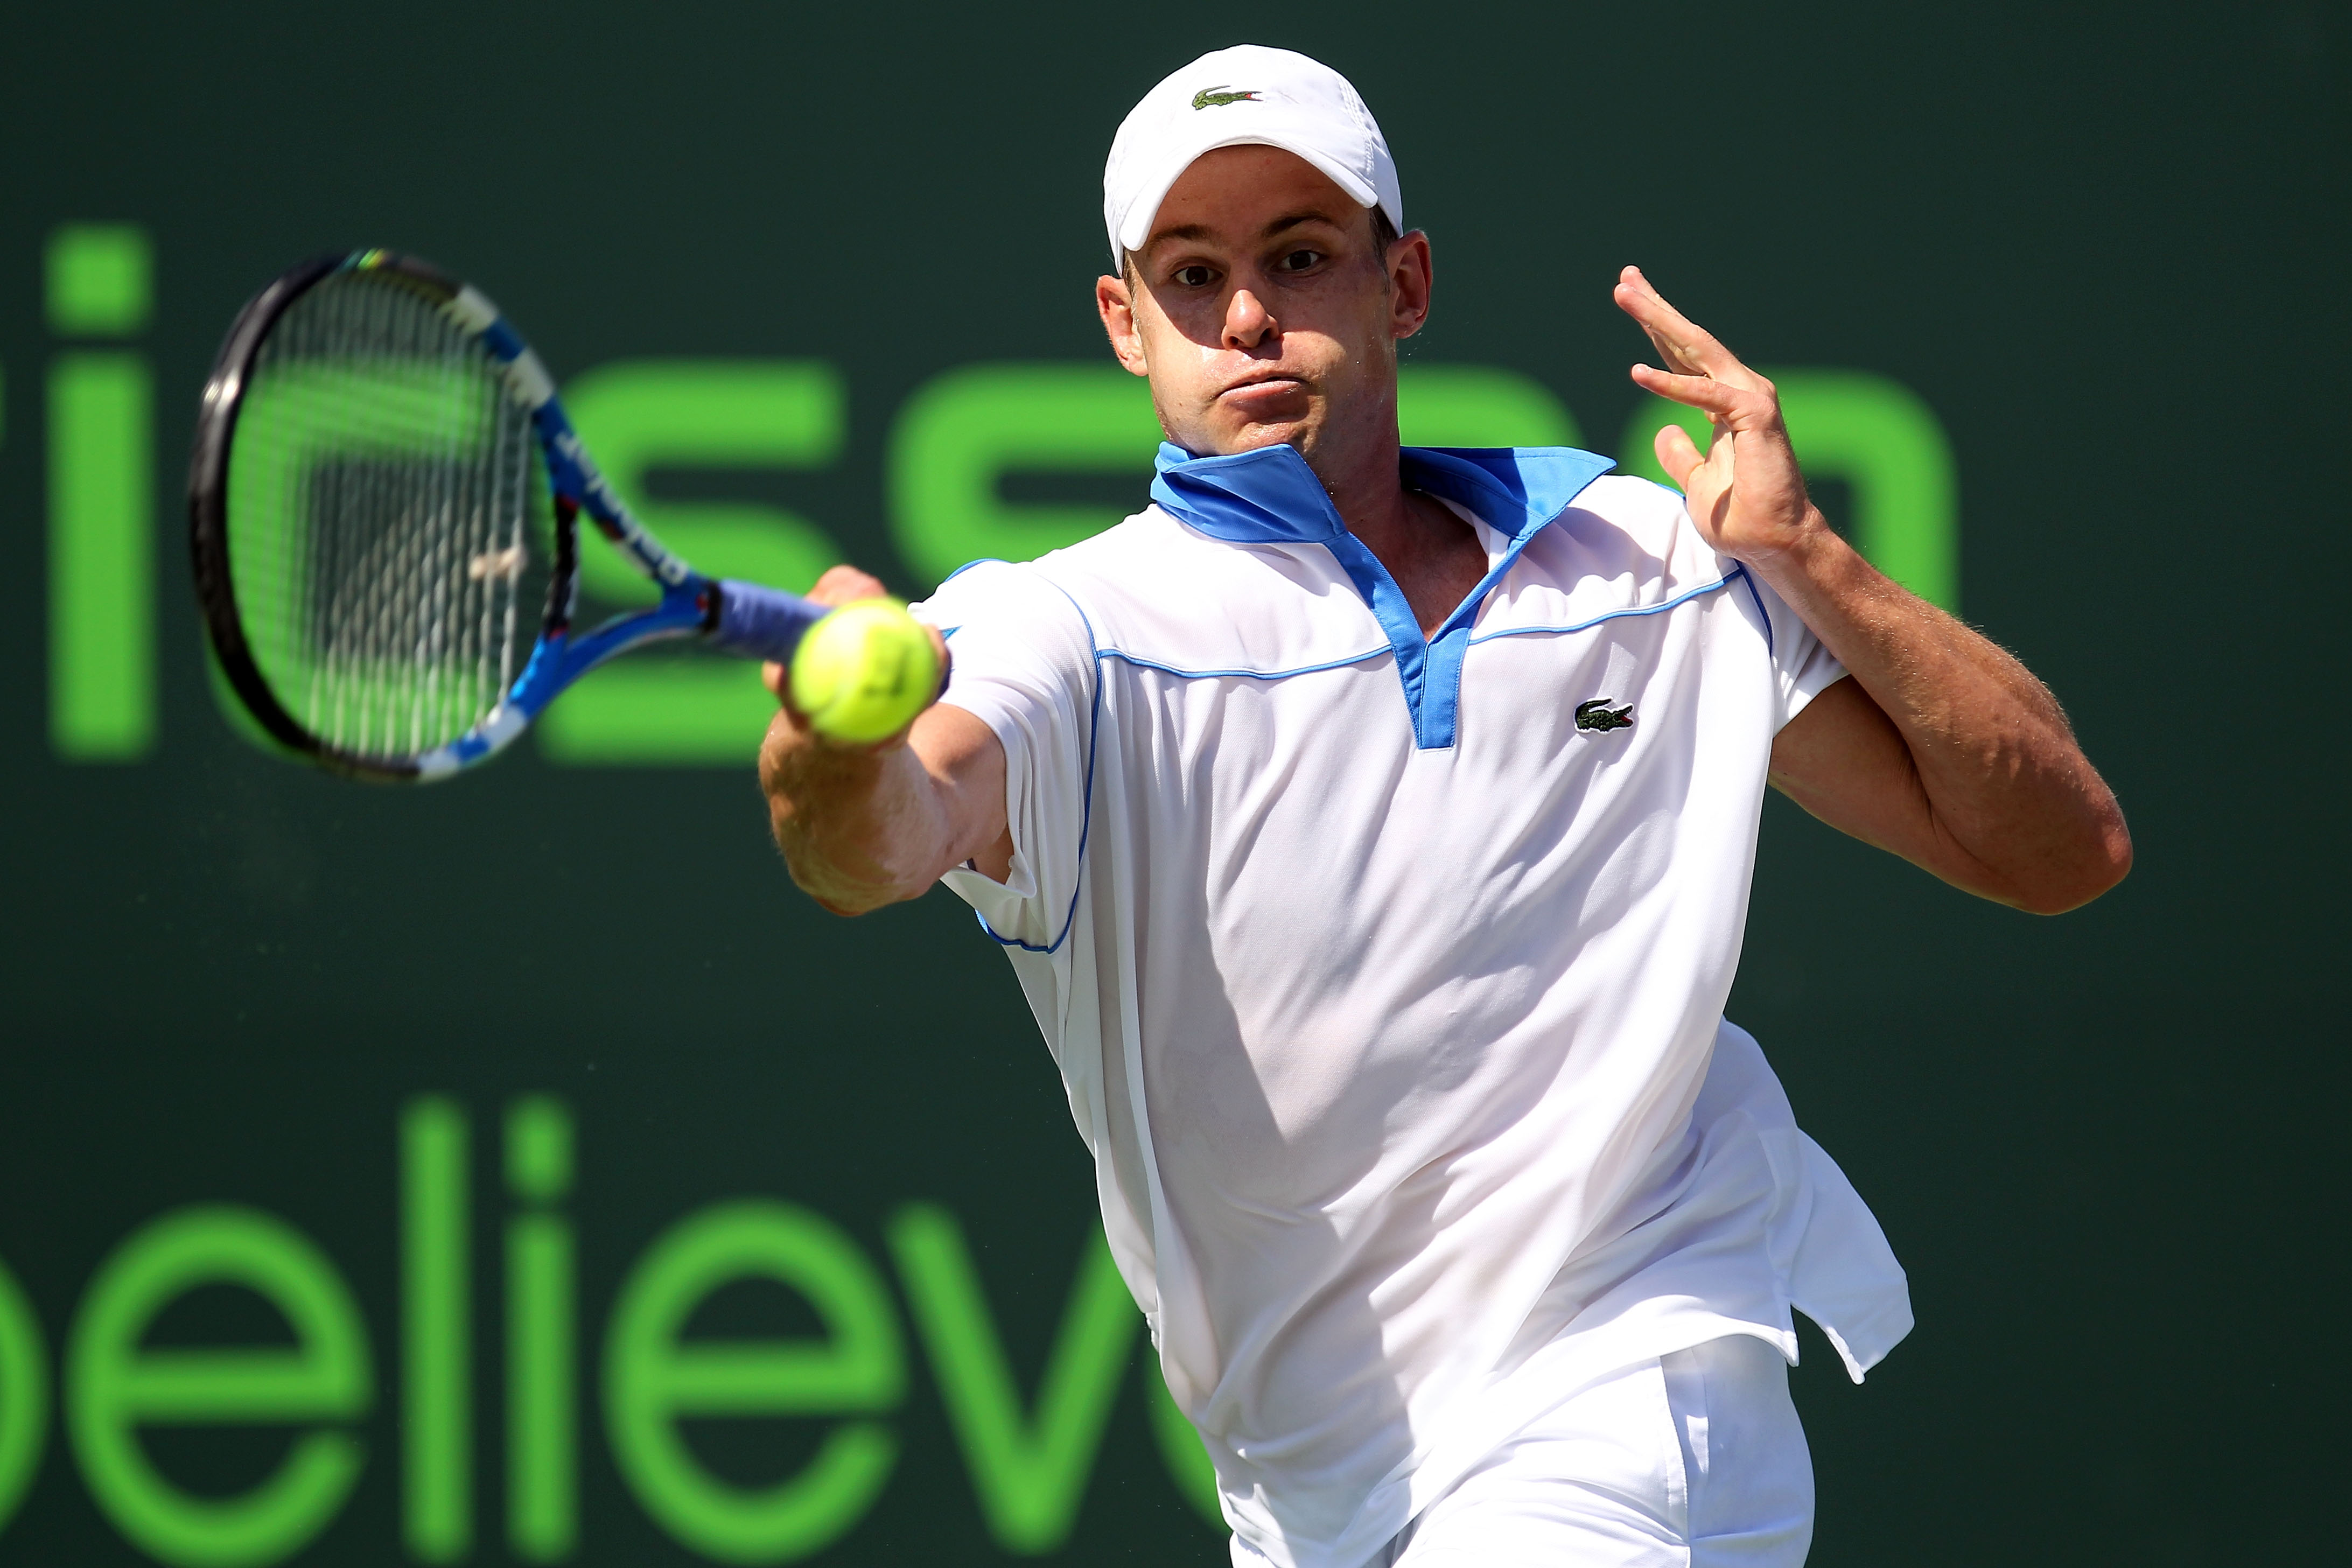 KEY BISCAYNE, FL - MARCH 26:  Andy Roddick hits a forehand return against Pablo Cuevas of Uruguay during the Sony Ericsson Open at Crandon Park Tennis Center on March 26, 2011 in Key Biscayne, Florida.  (Photo by Al Bello/Getty Images)